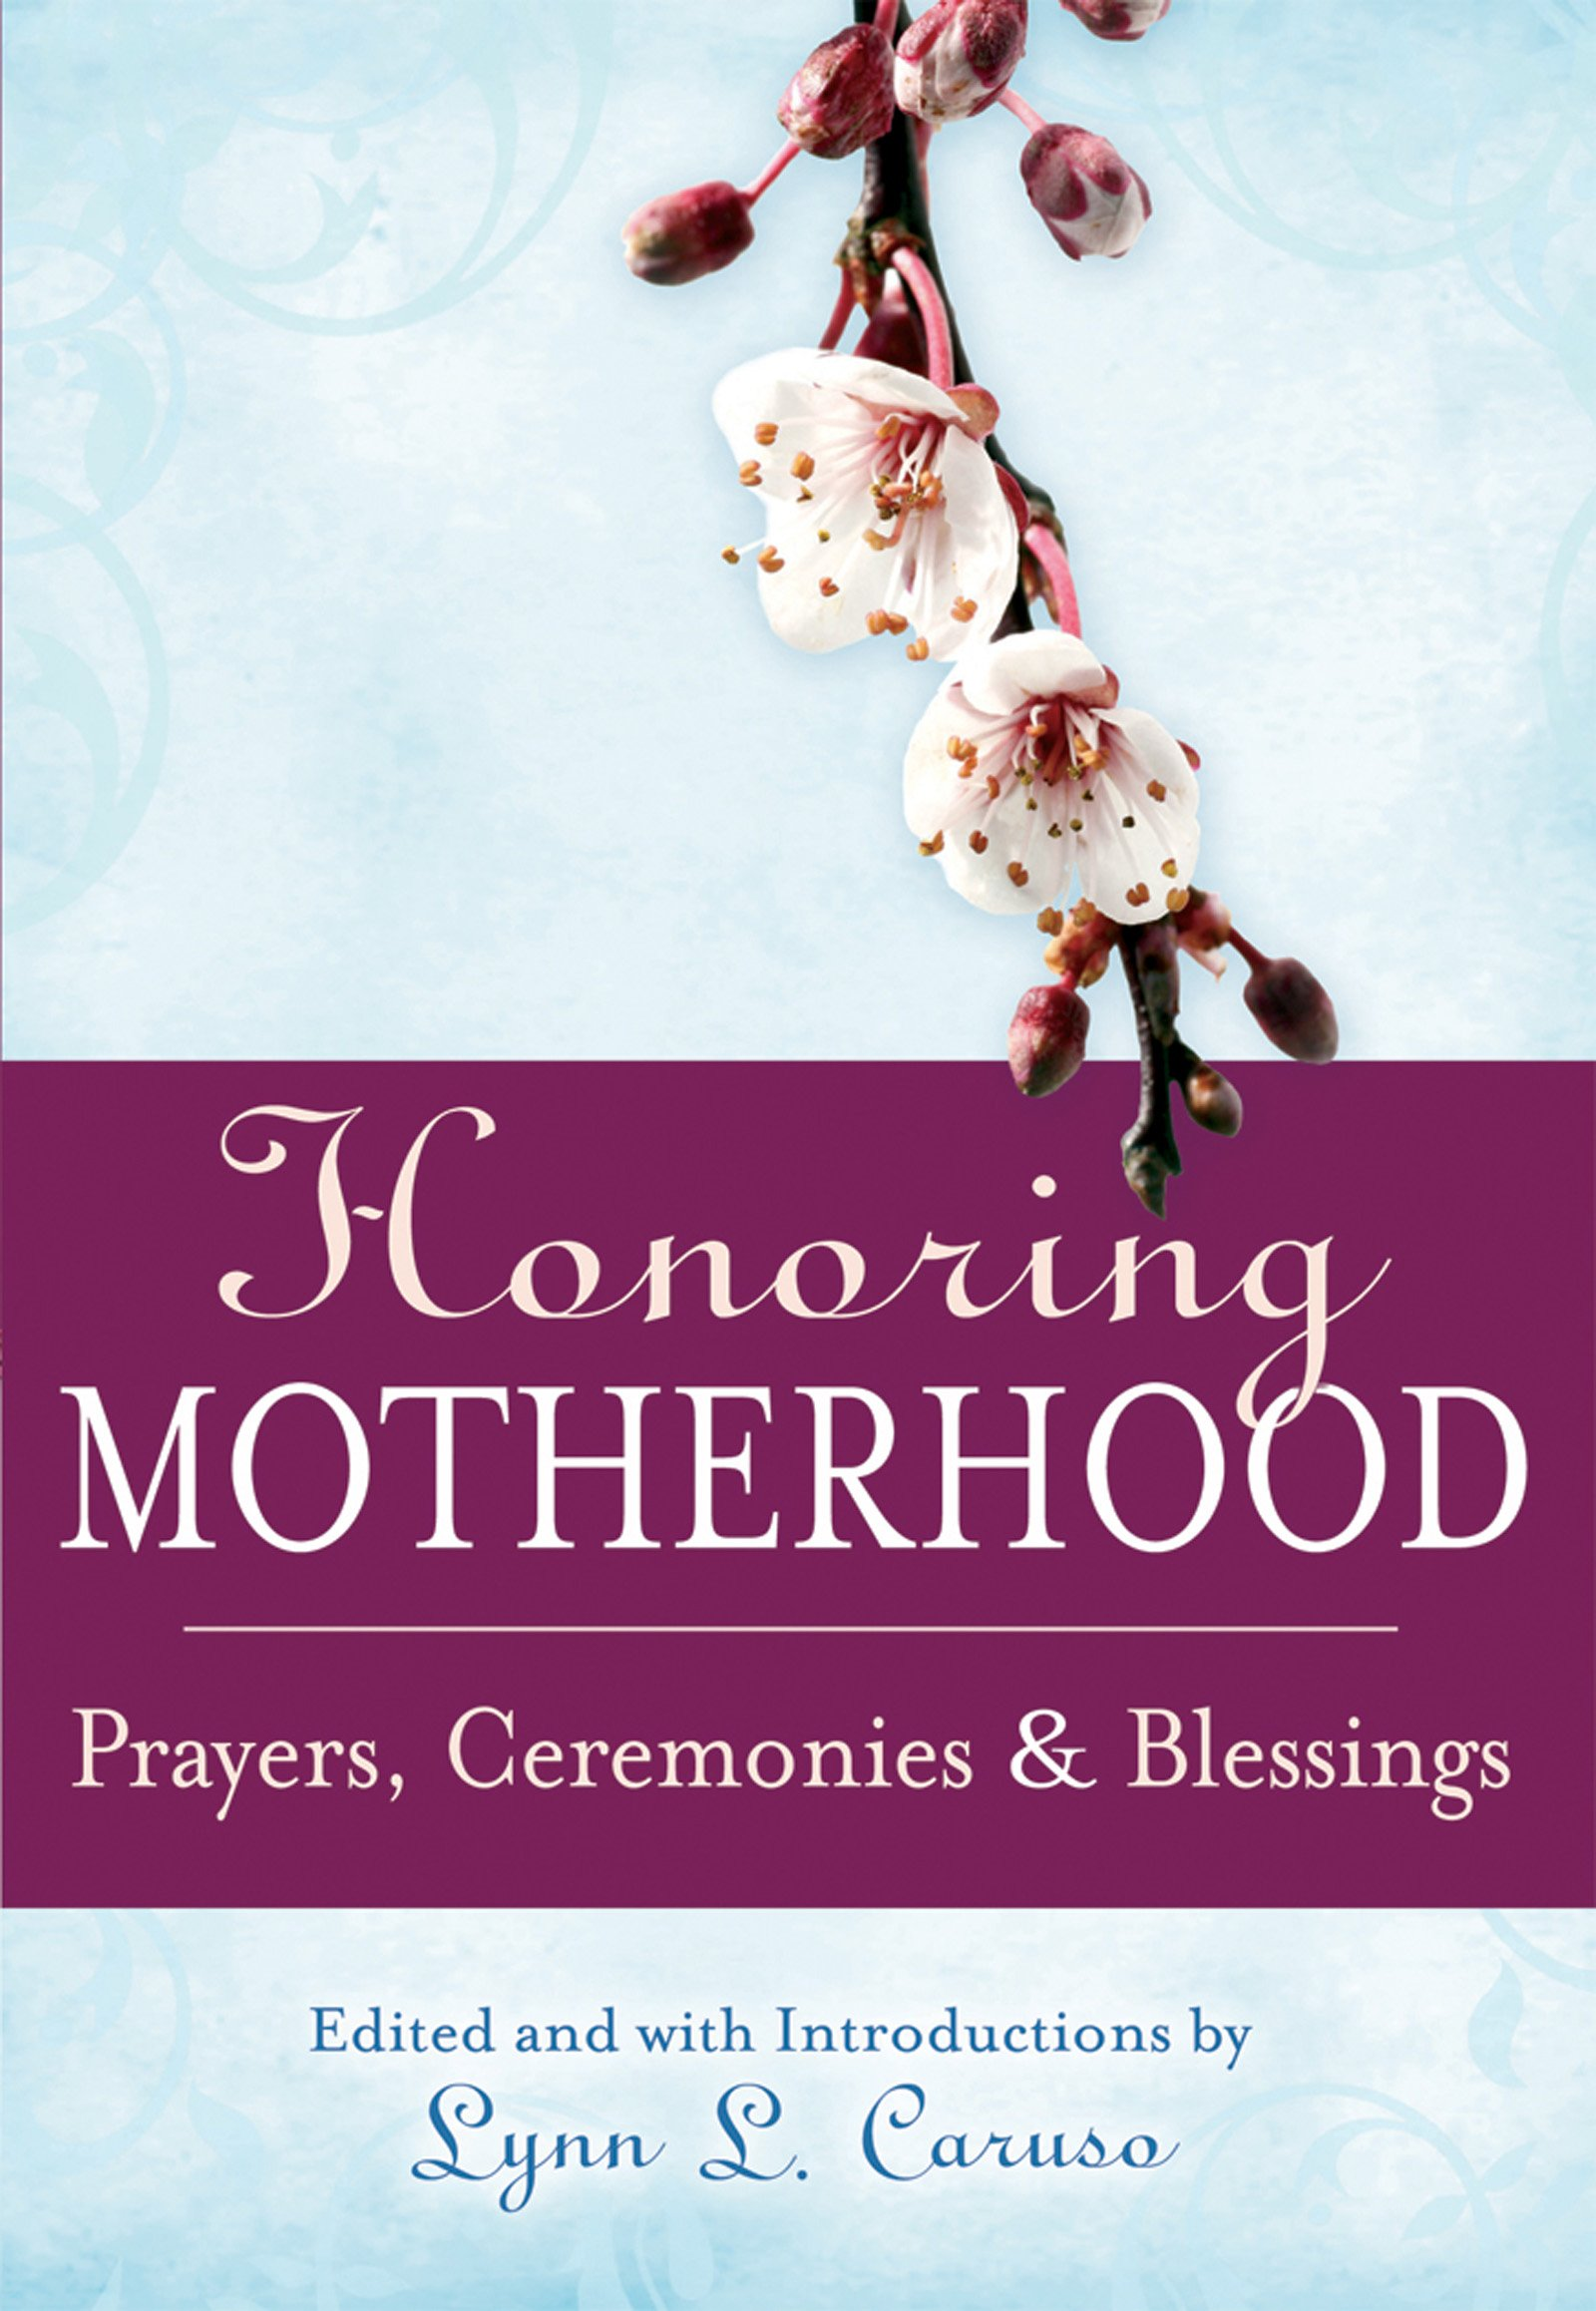 Honoring Motherhood: Prayers, Ceremonies & Blessings: Lynn L Caruso:  0001594733848: Amazon: Books